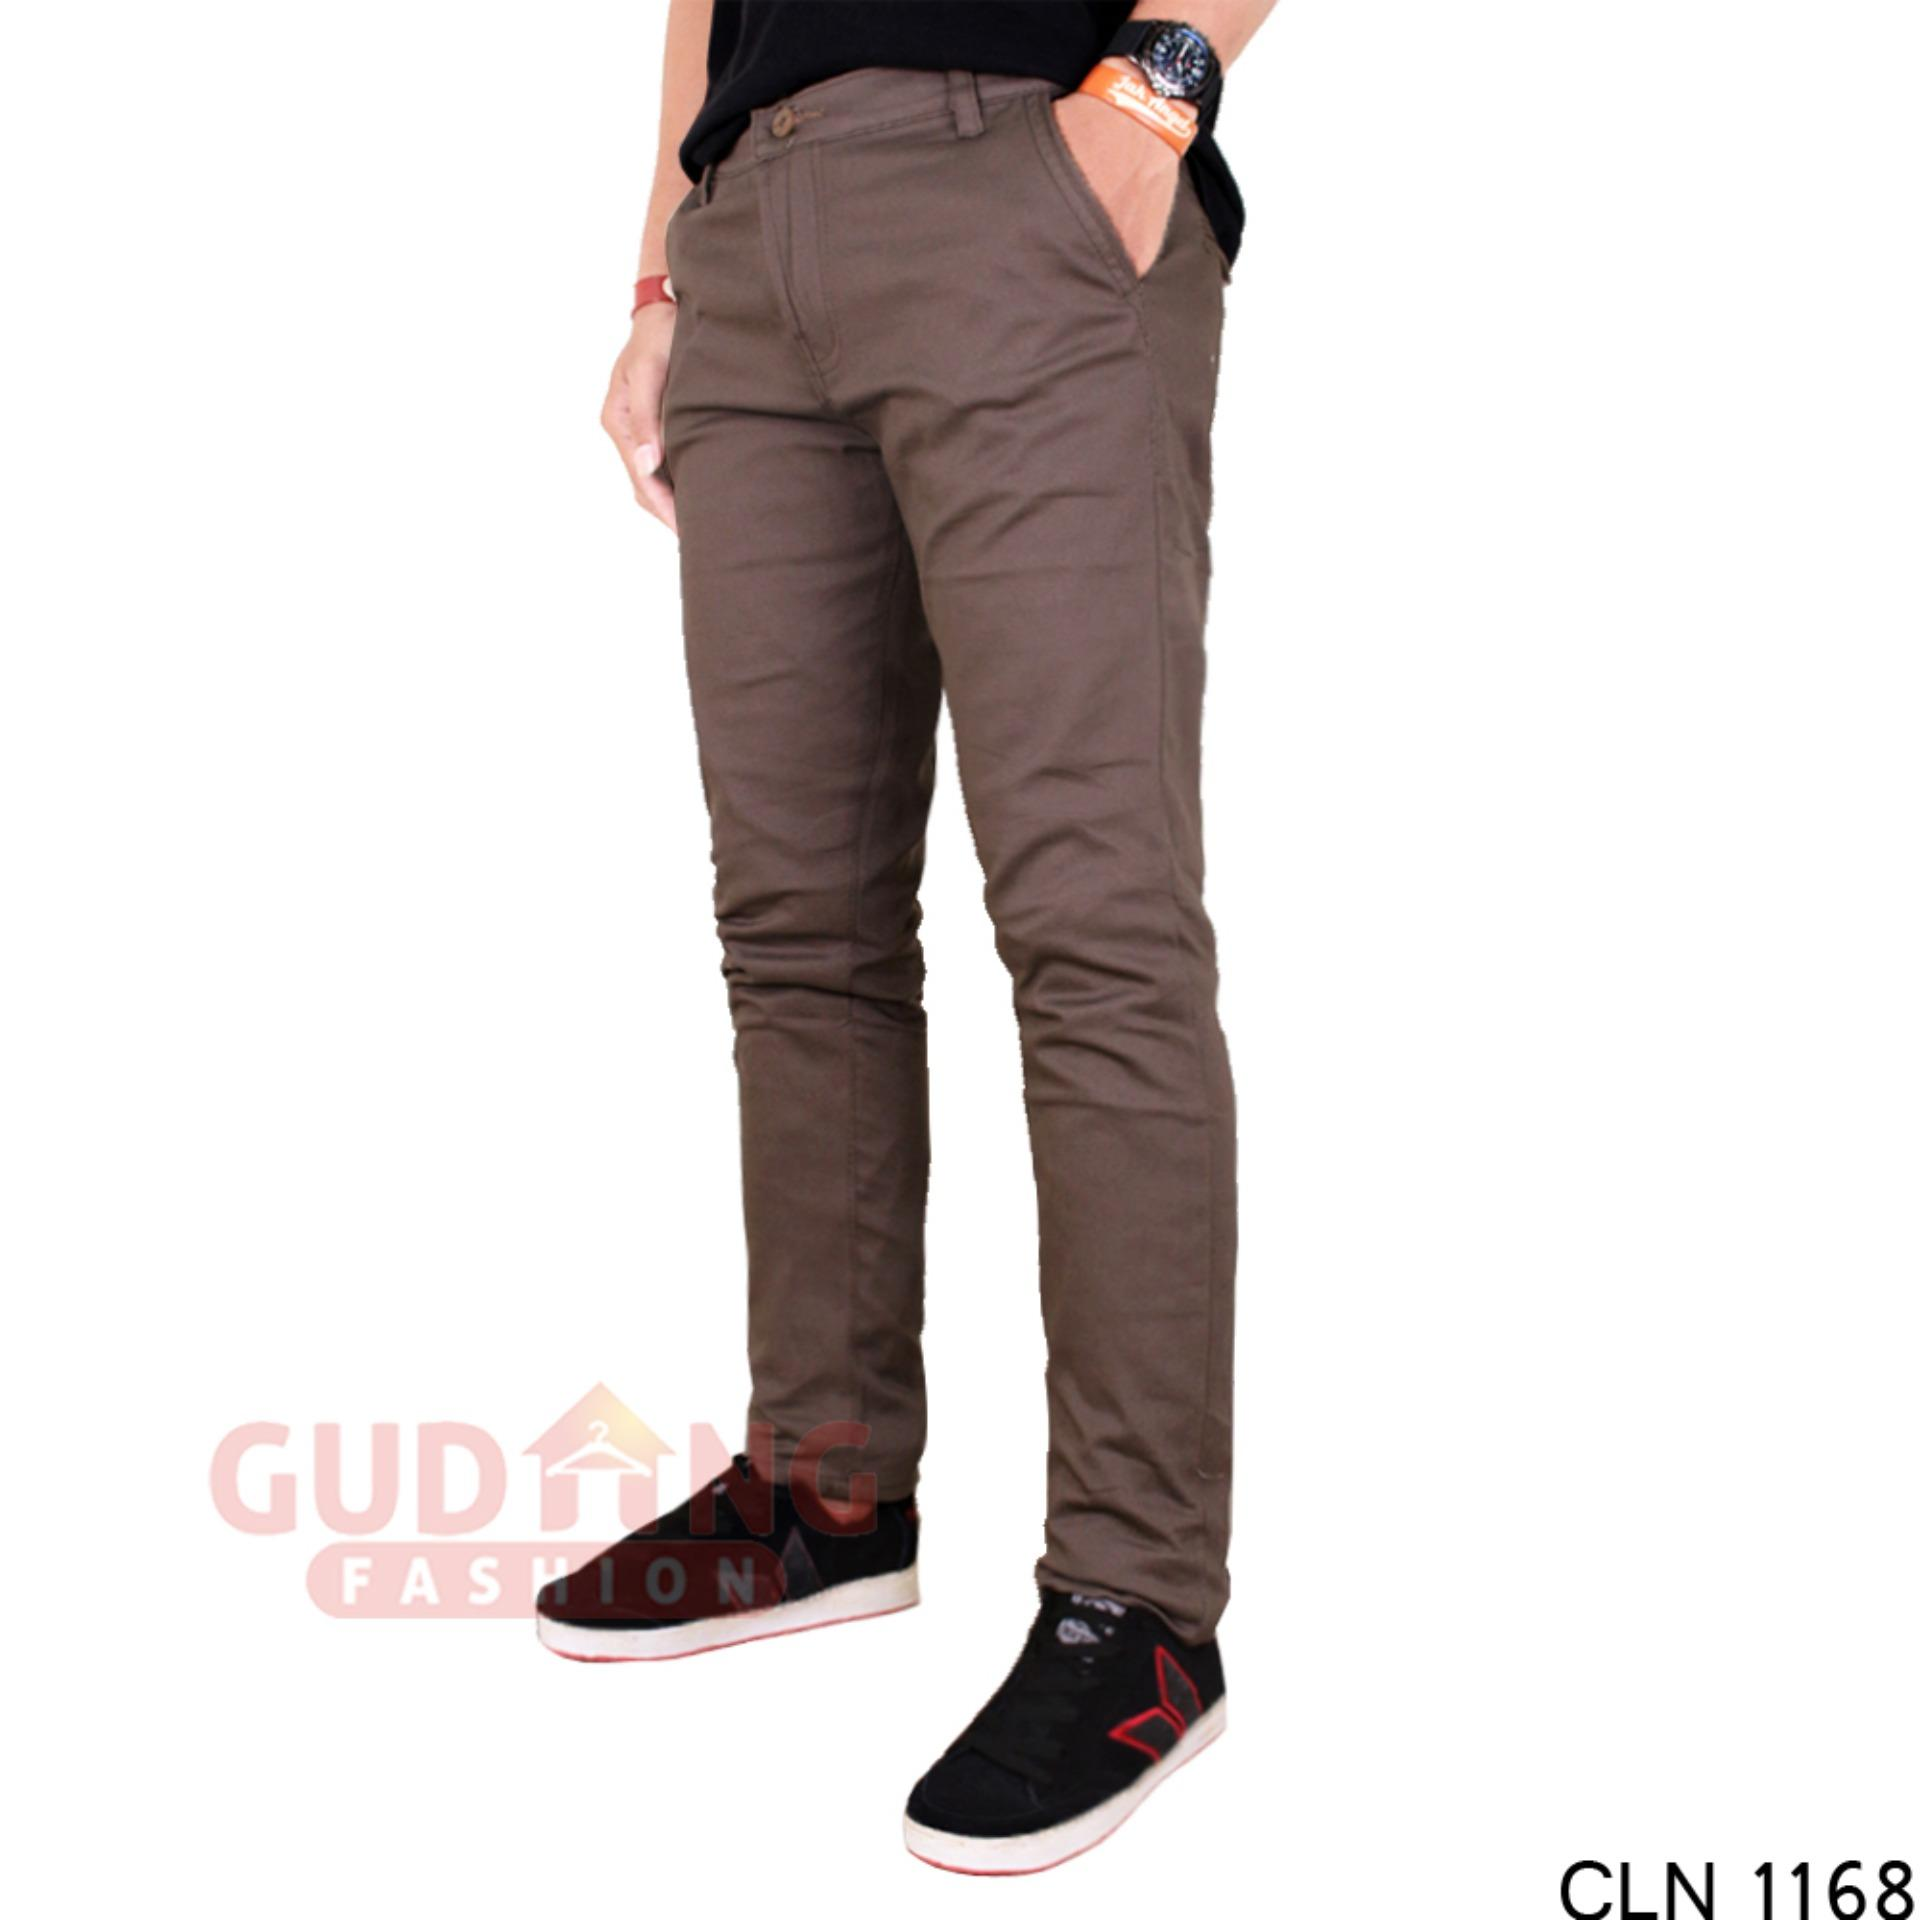 Gudang Fashion - Celana Panjang Chino Pria / Men New Chino Pants - Coklat